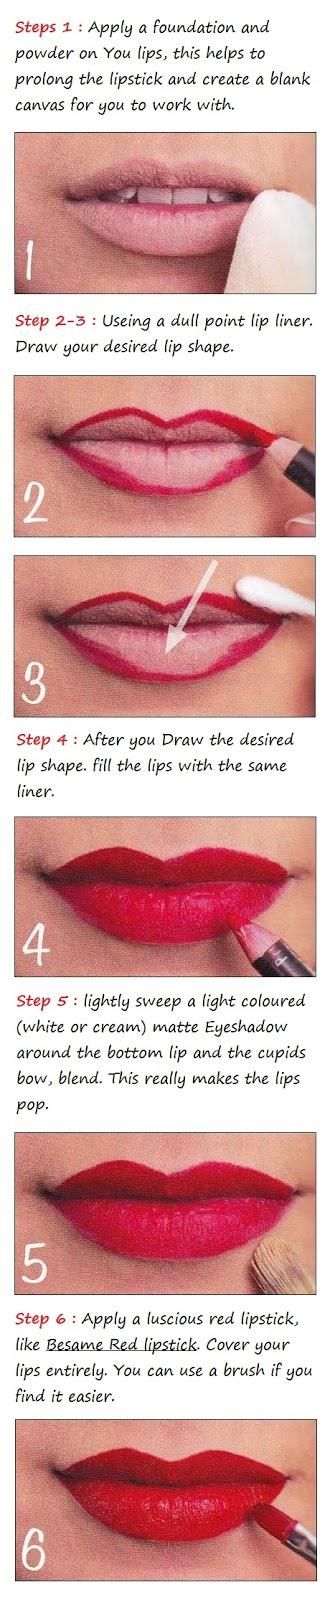 Glamorous Red Lips Tutorial